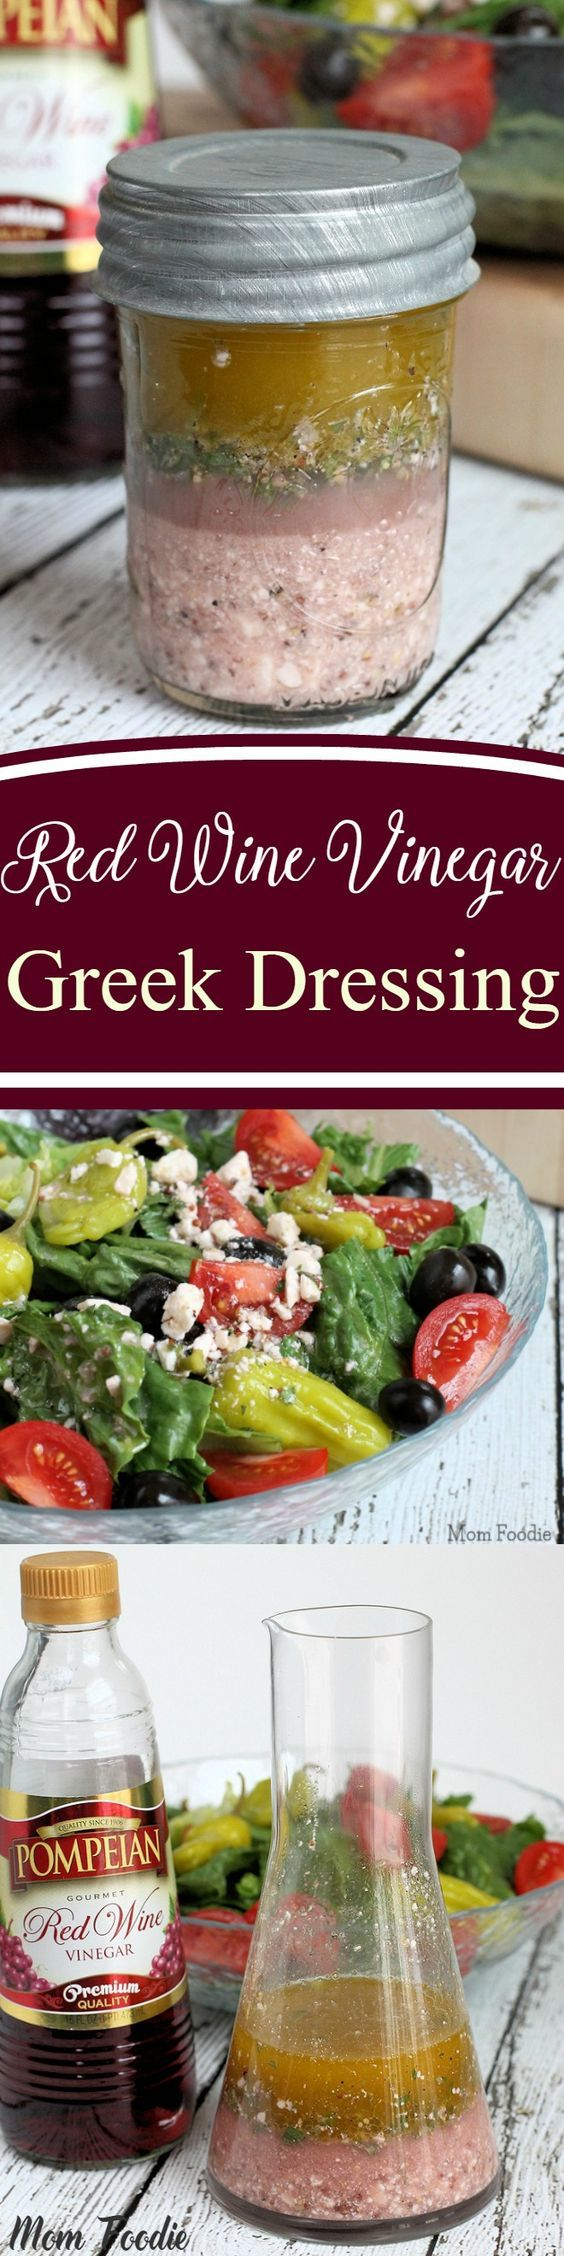 Red Wine Vinegar Greek Dressing #farmhouserulesrecipes